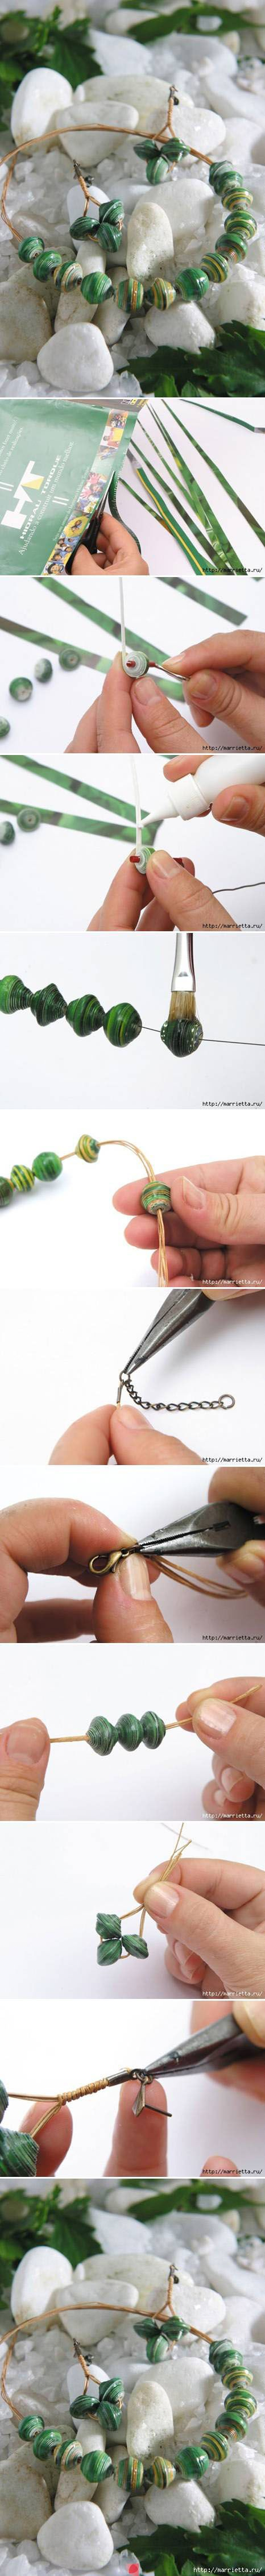 13 Simple Ways to Have DIY Accessories